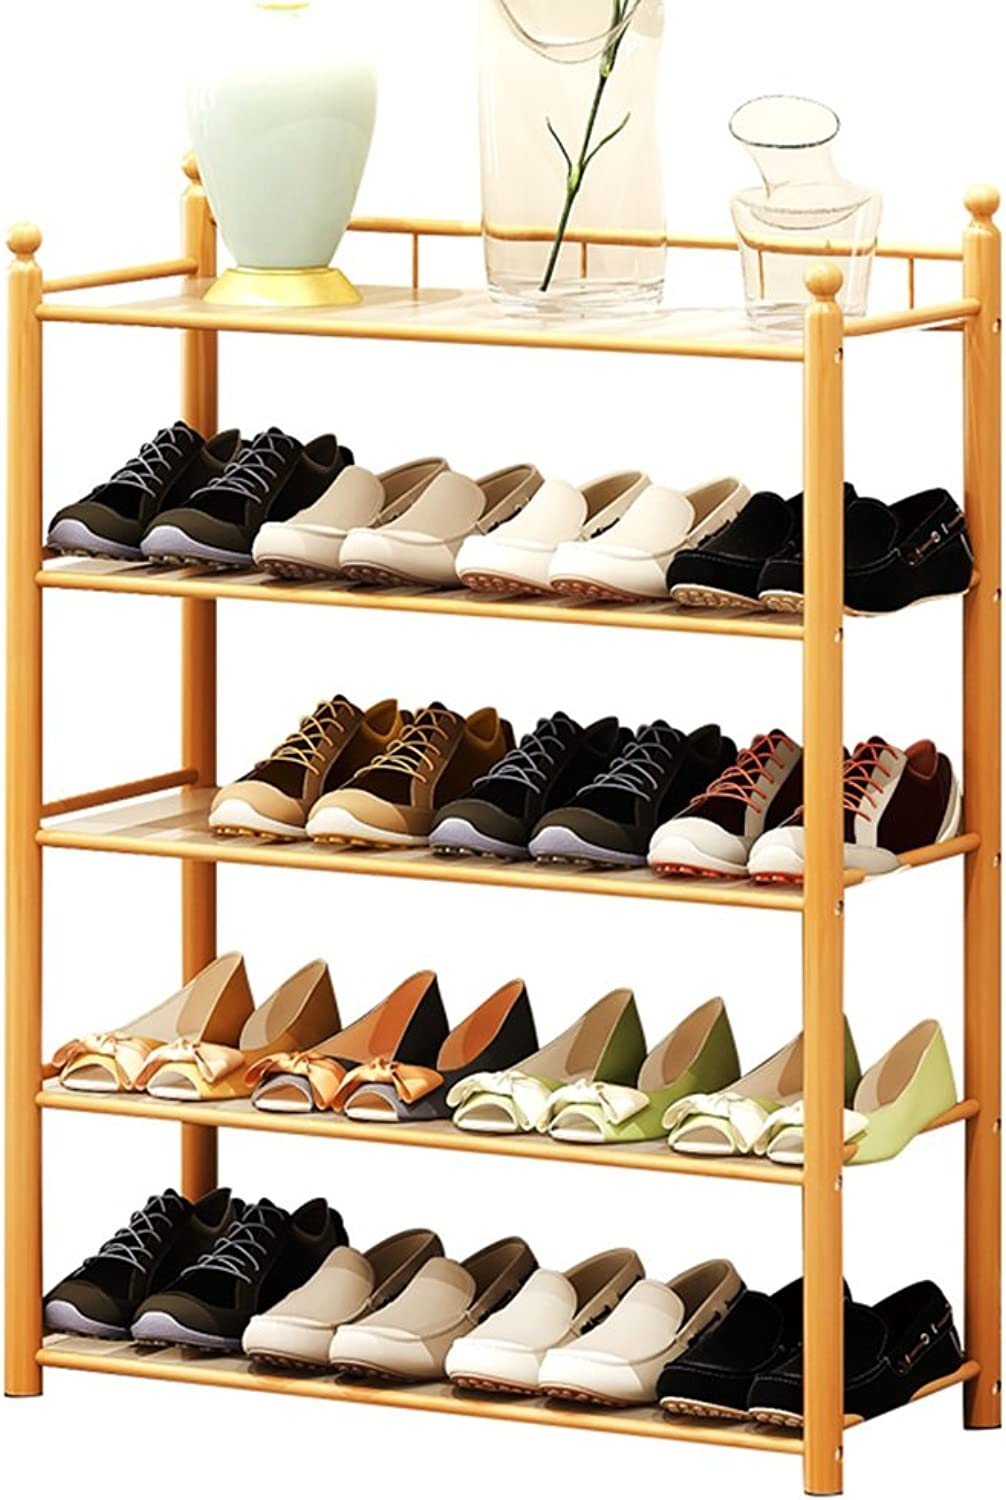 JIANFEI shoes Shelf Rack Dust Pad Multi-Layer Simple Storage Cabinet Bamboo (Size   68  24  87cm)